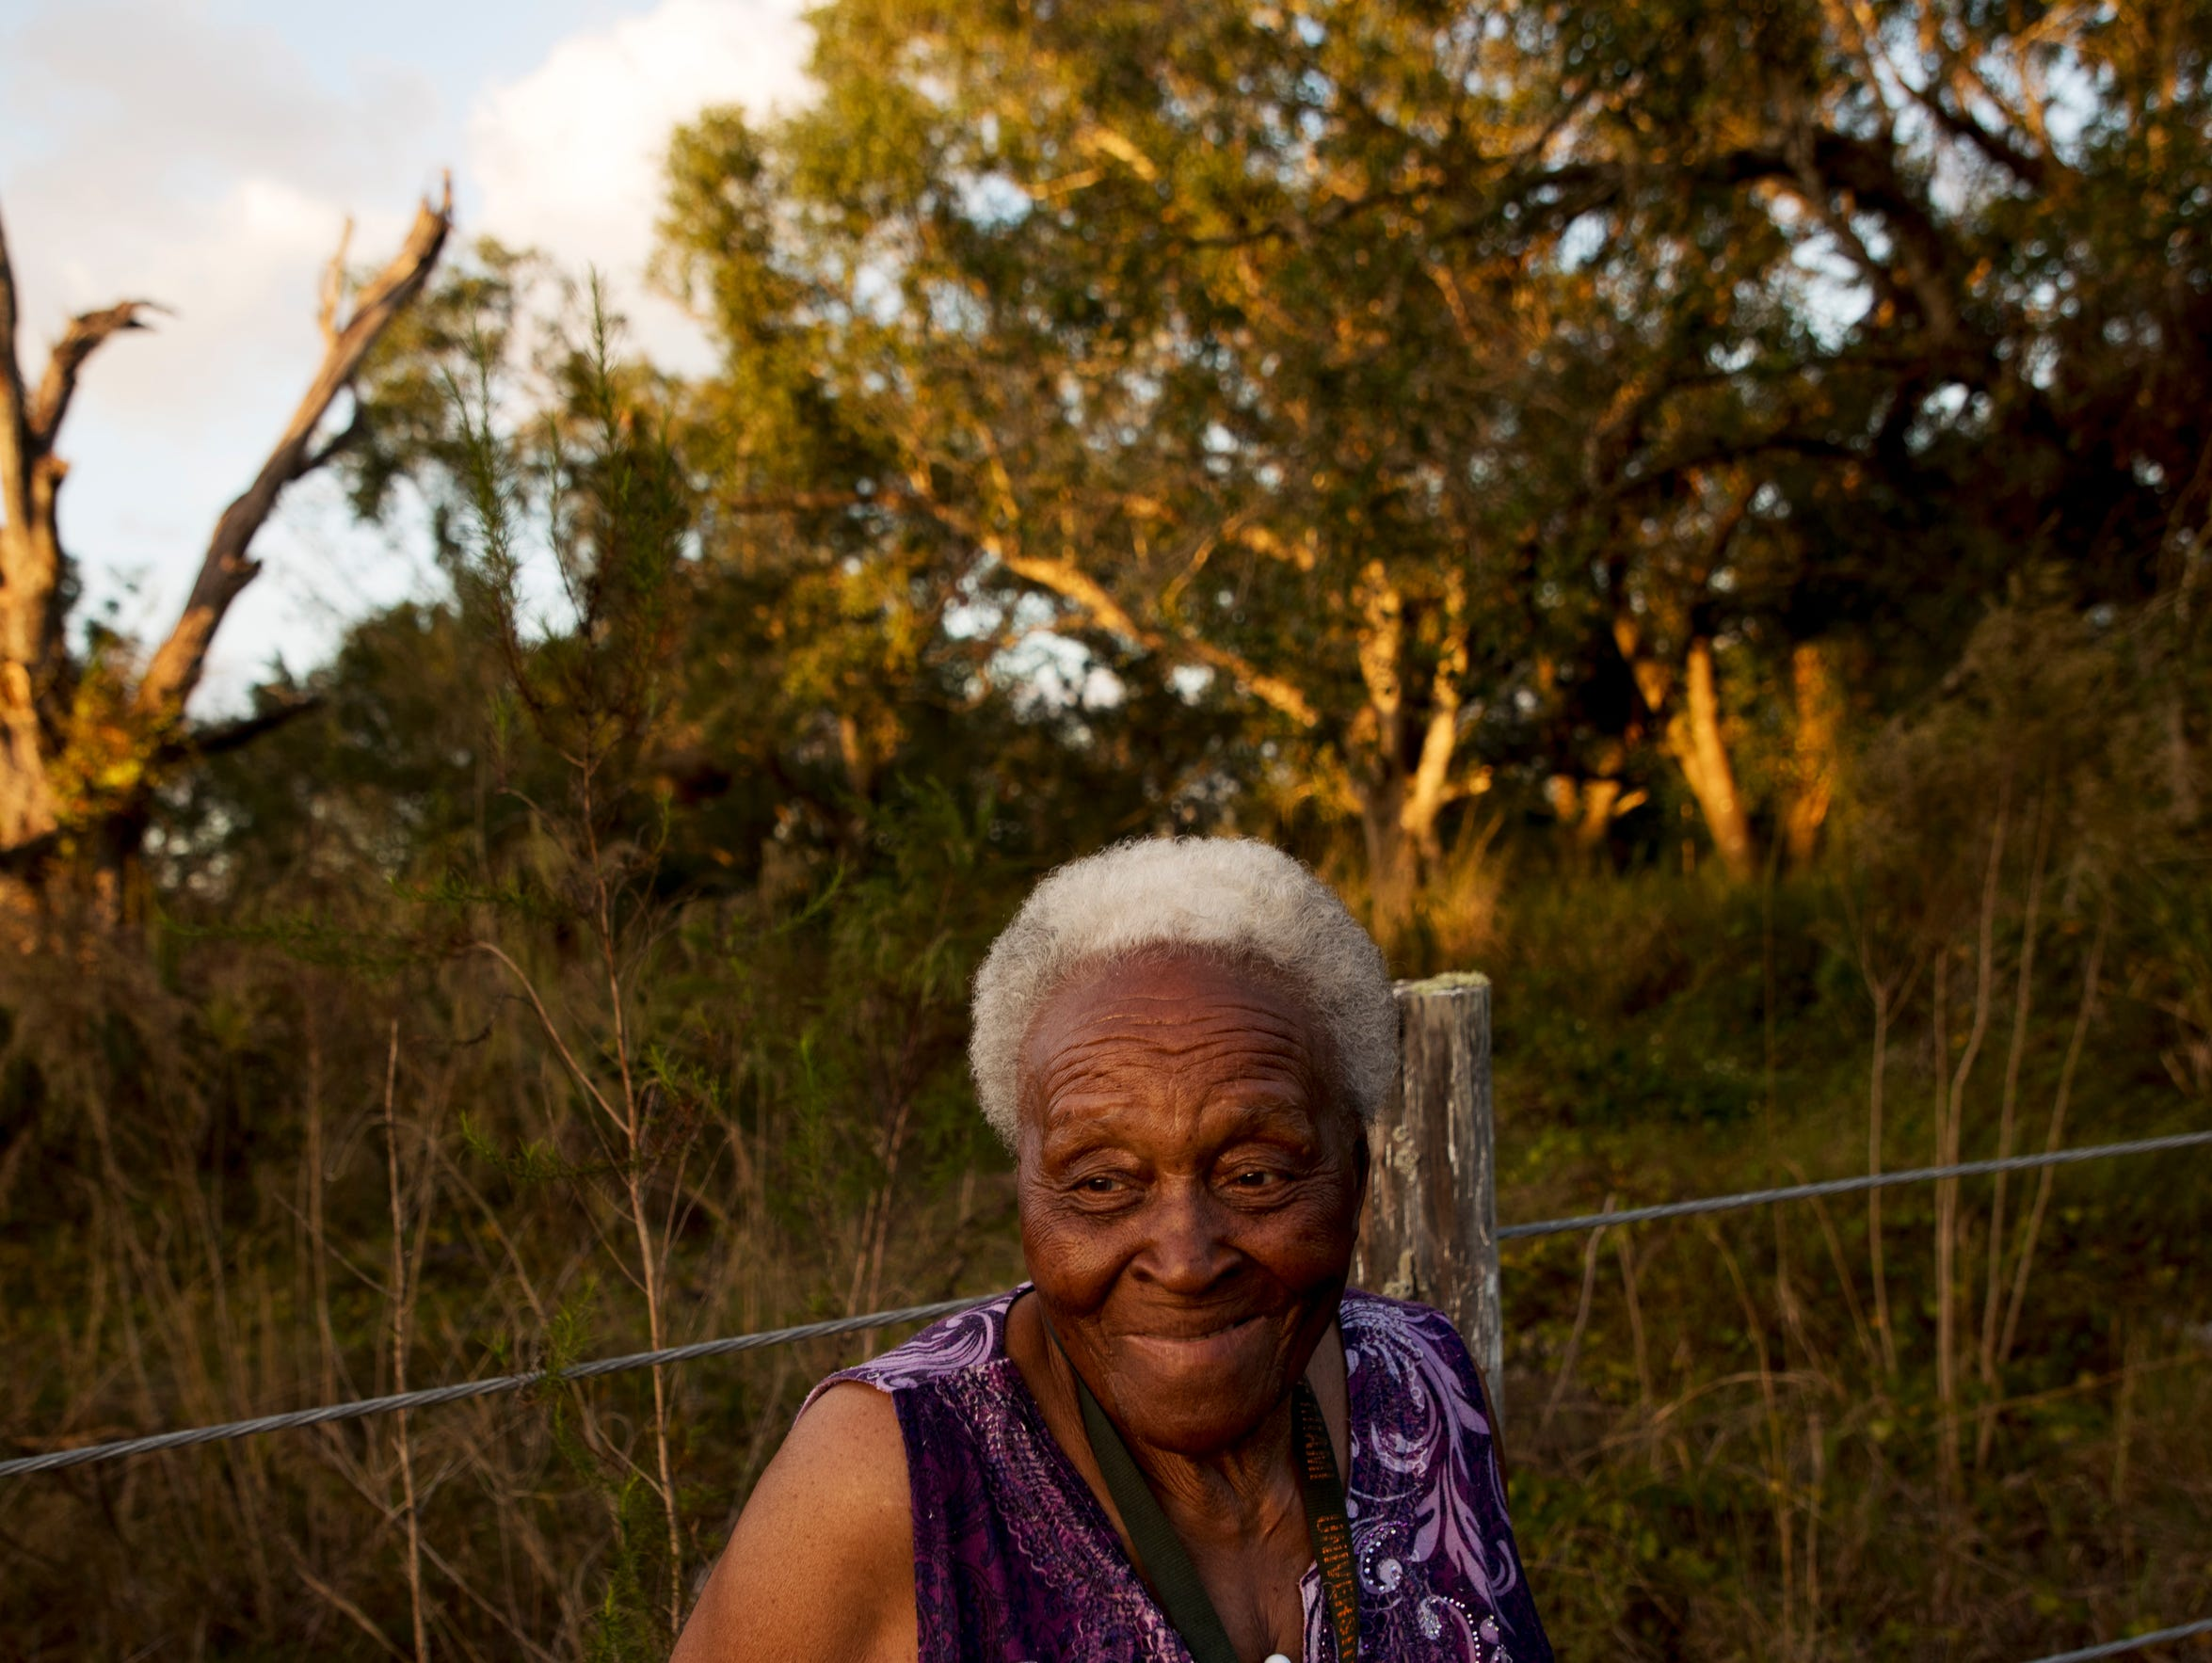 Lois Freeman, a resident of Fort Myers who lives near